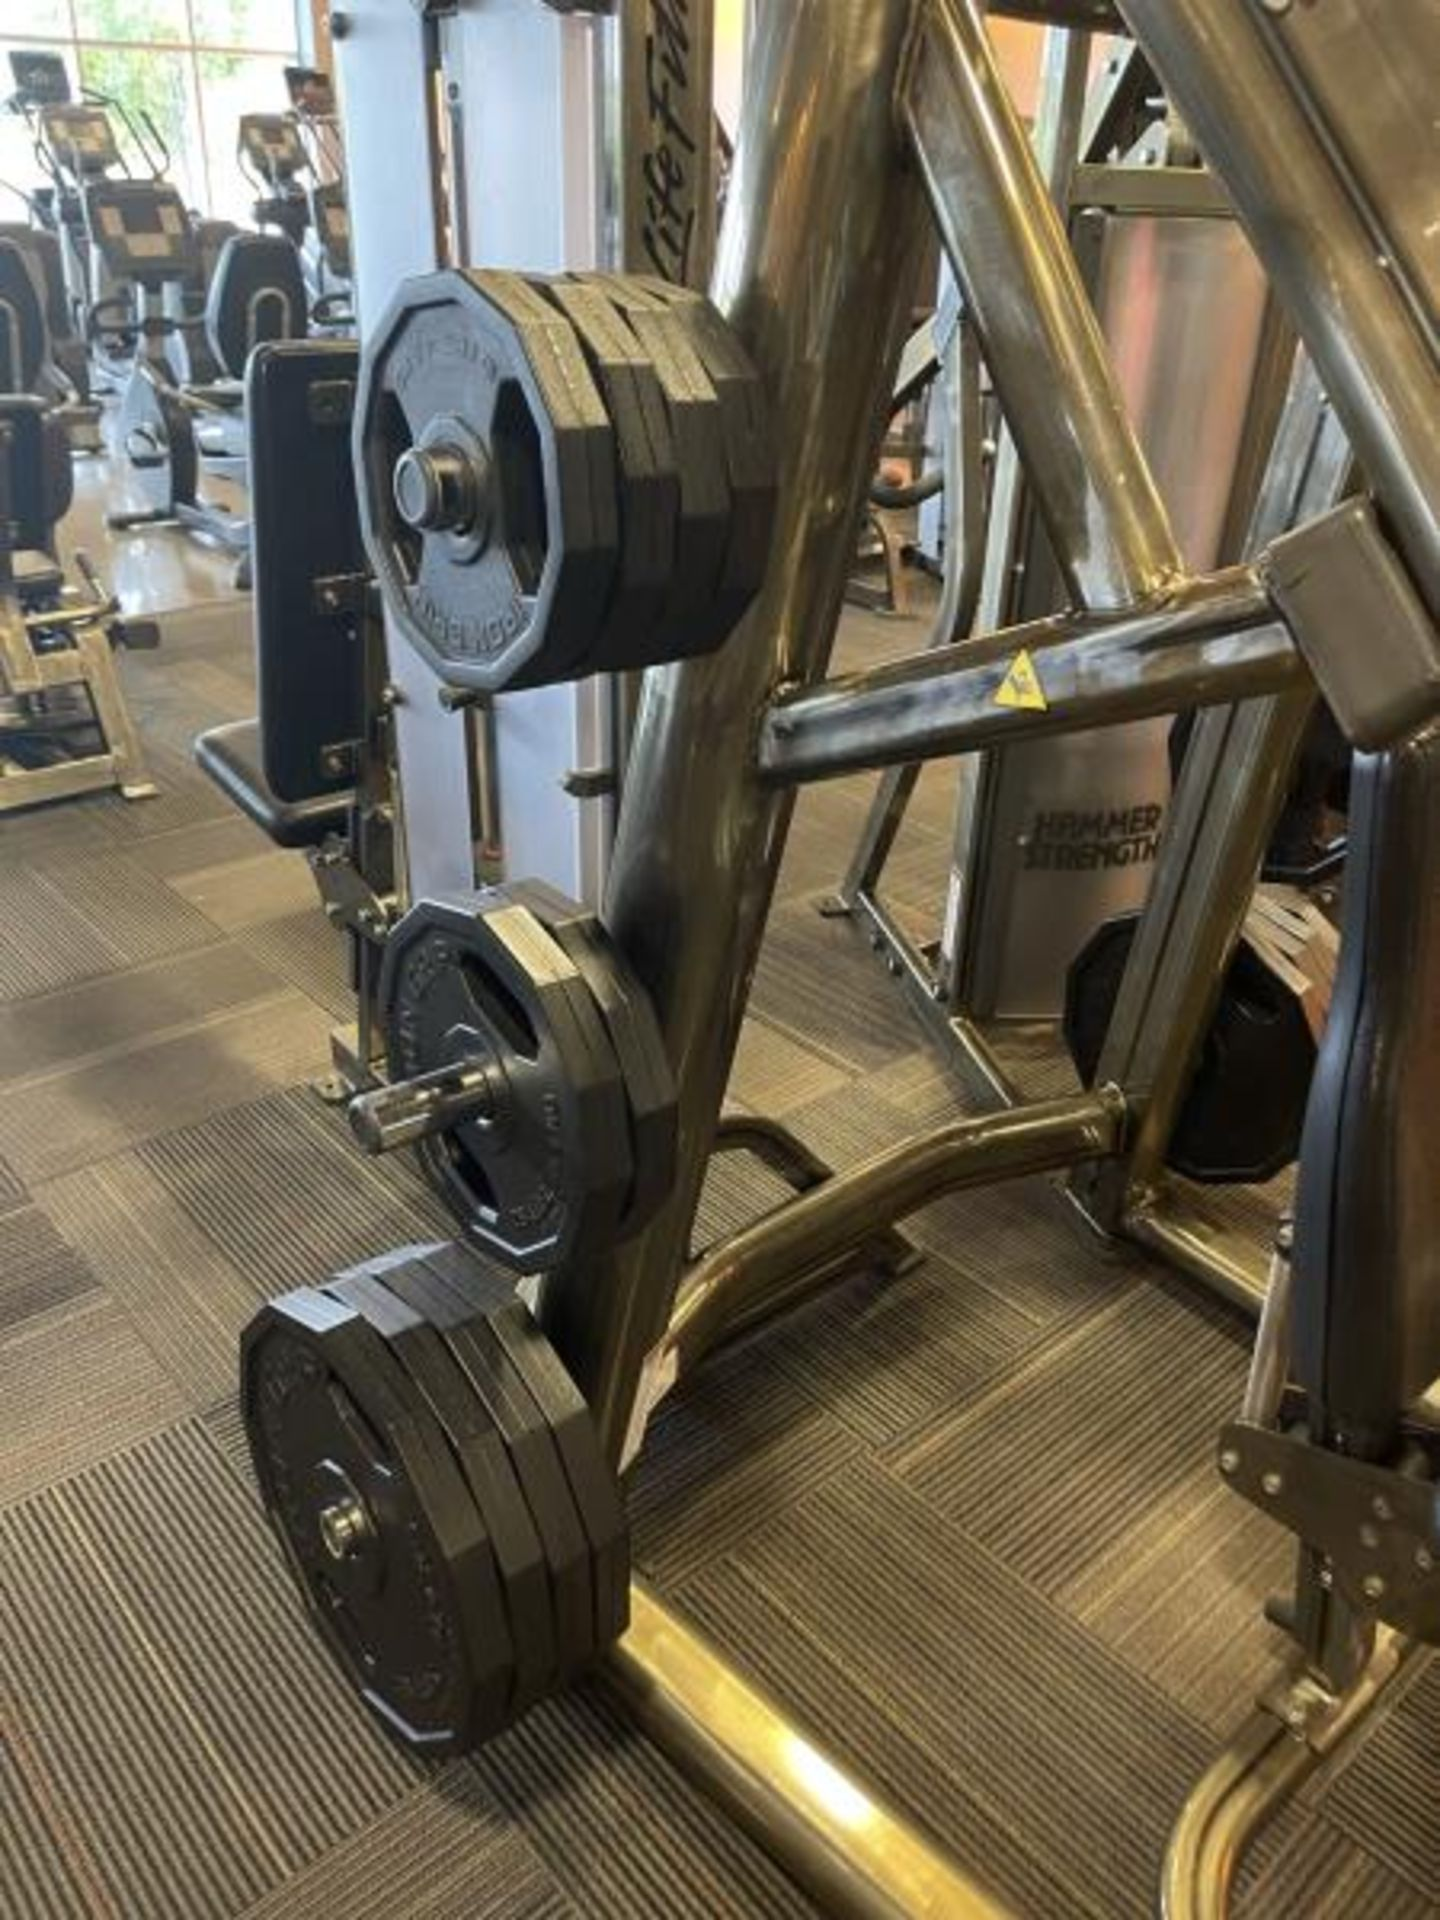 Incline Press with Iron Grip Weight Plates M: SPLIP - Image 3 of 6